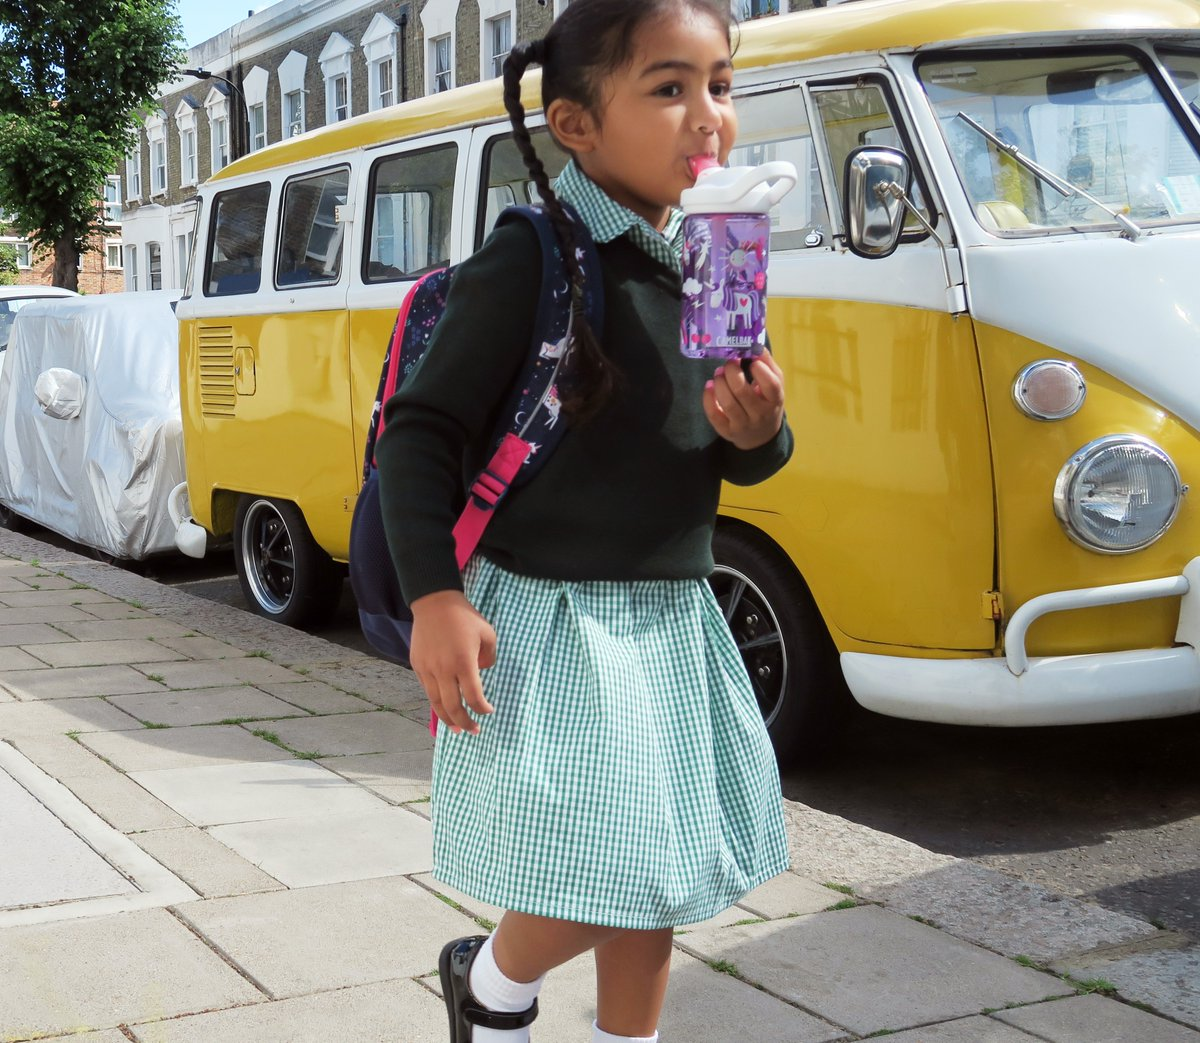 Wherever learning happens, we've got all they need for the new school term. From uniform to laptops shop all the supplies for today's classroom via our online school uniform shop: https://t.co/7hnZYqYklN 📚 https://t.co/VXCzdzDLeL